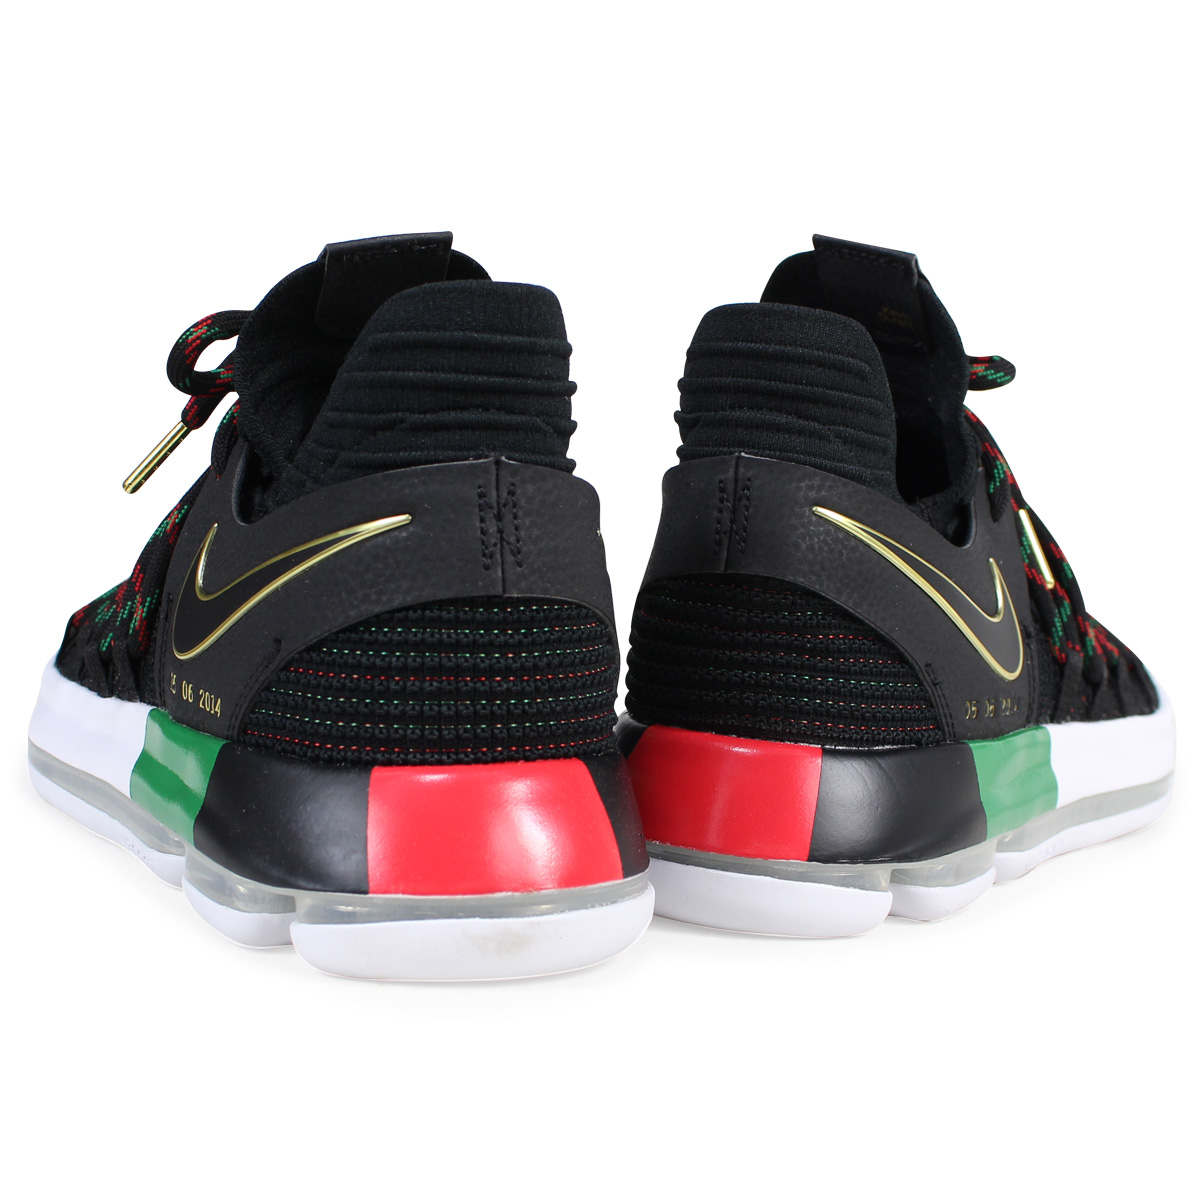 size 40 2a1c0 22f09 NIKE Nike KD10 sneakers men ZOOM KD 10 LMTD EP BHM AA4197-003 Kevin Durant  black